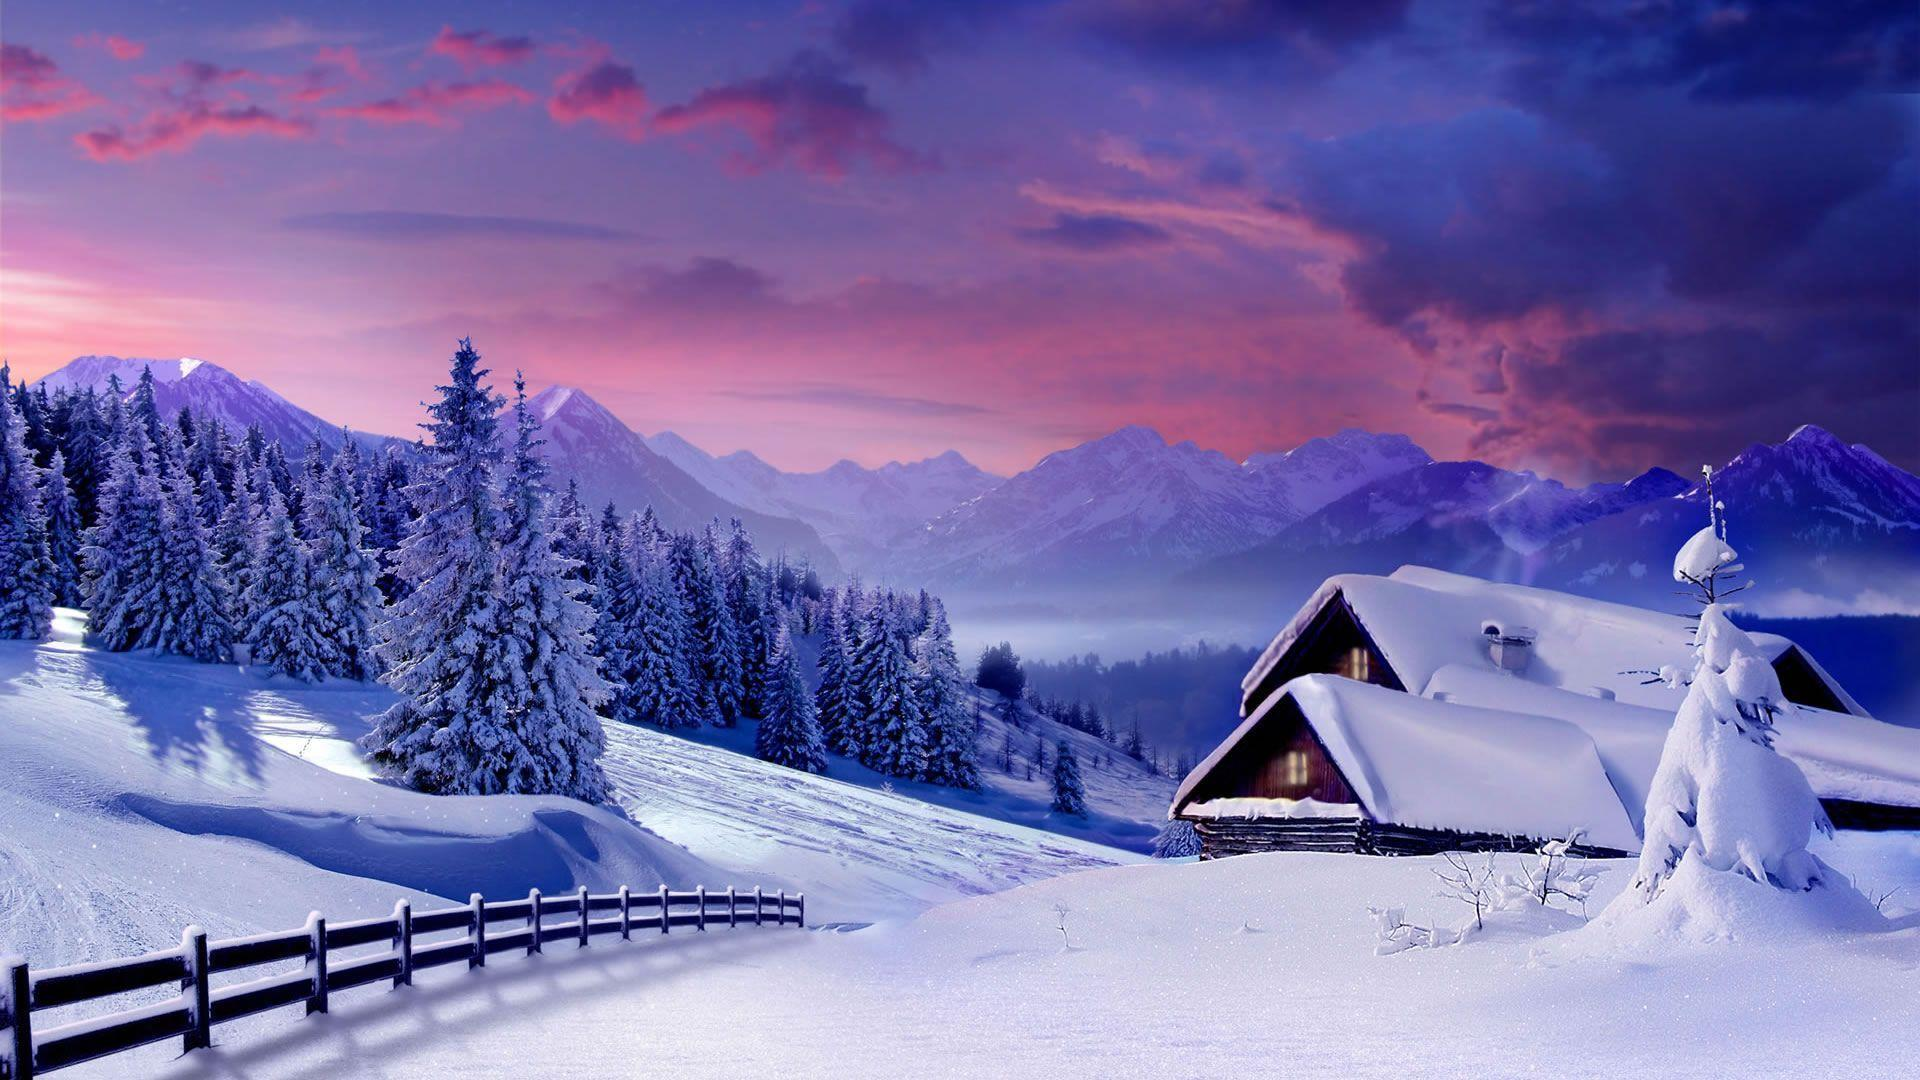 Winter Wallpaper 1920X1080 Hd 37466 Hd Wallpapers in Nature ...